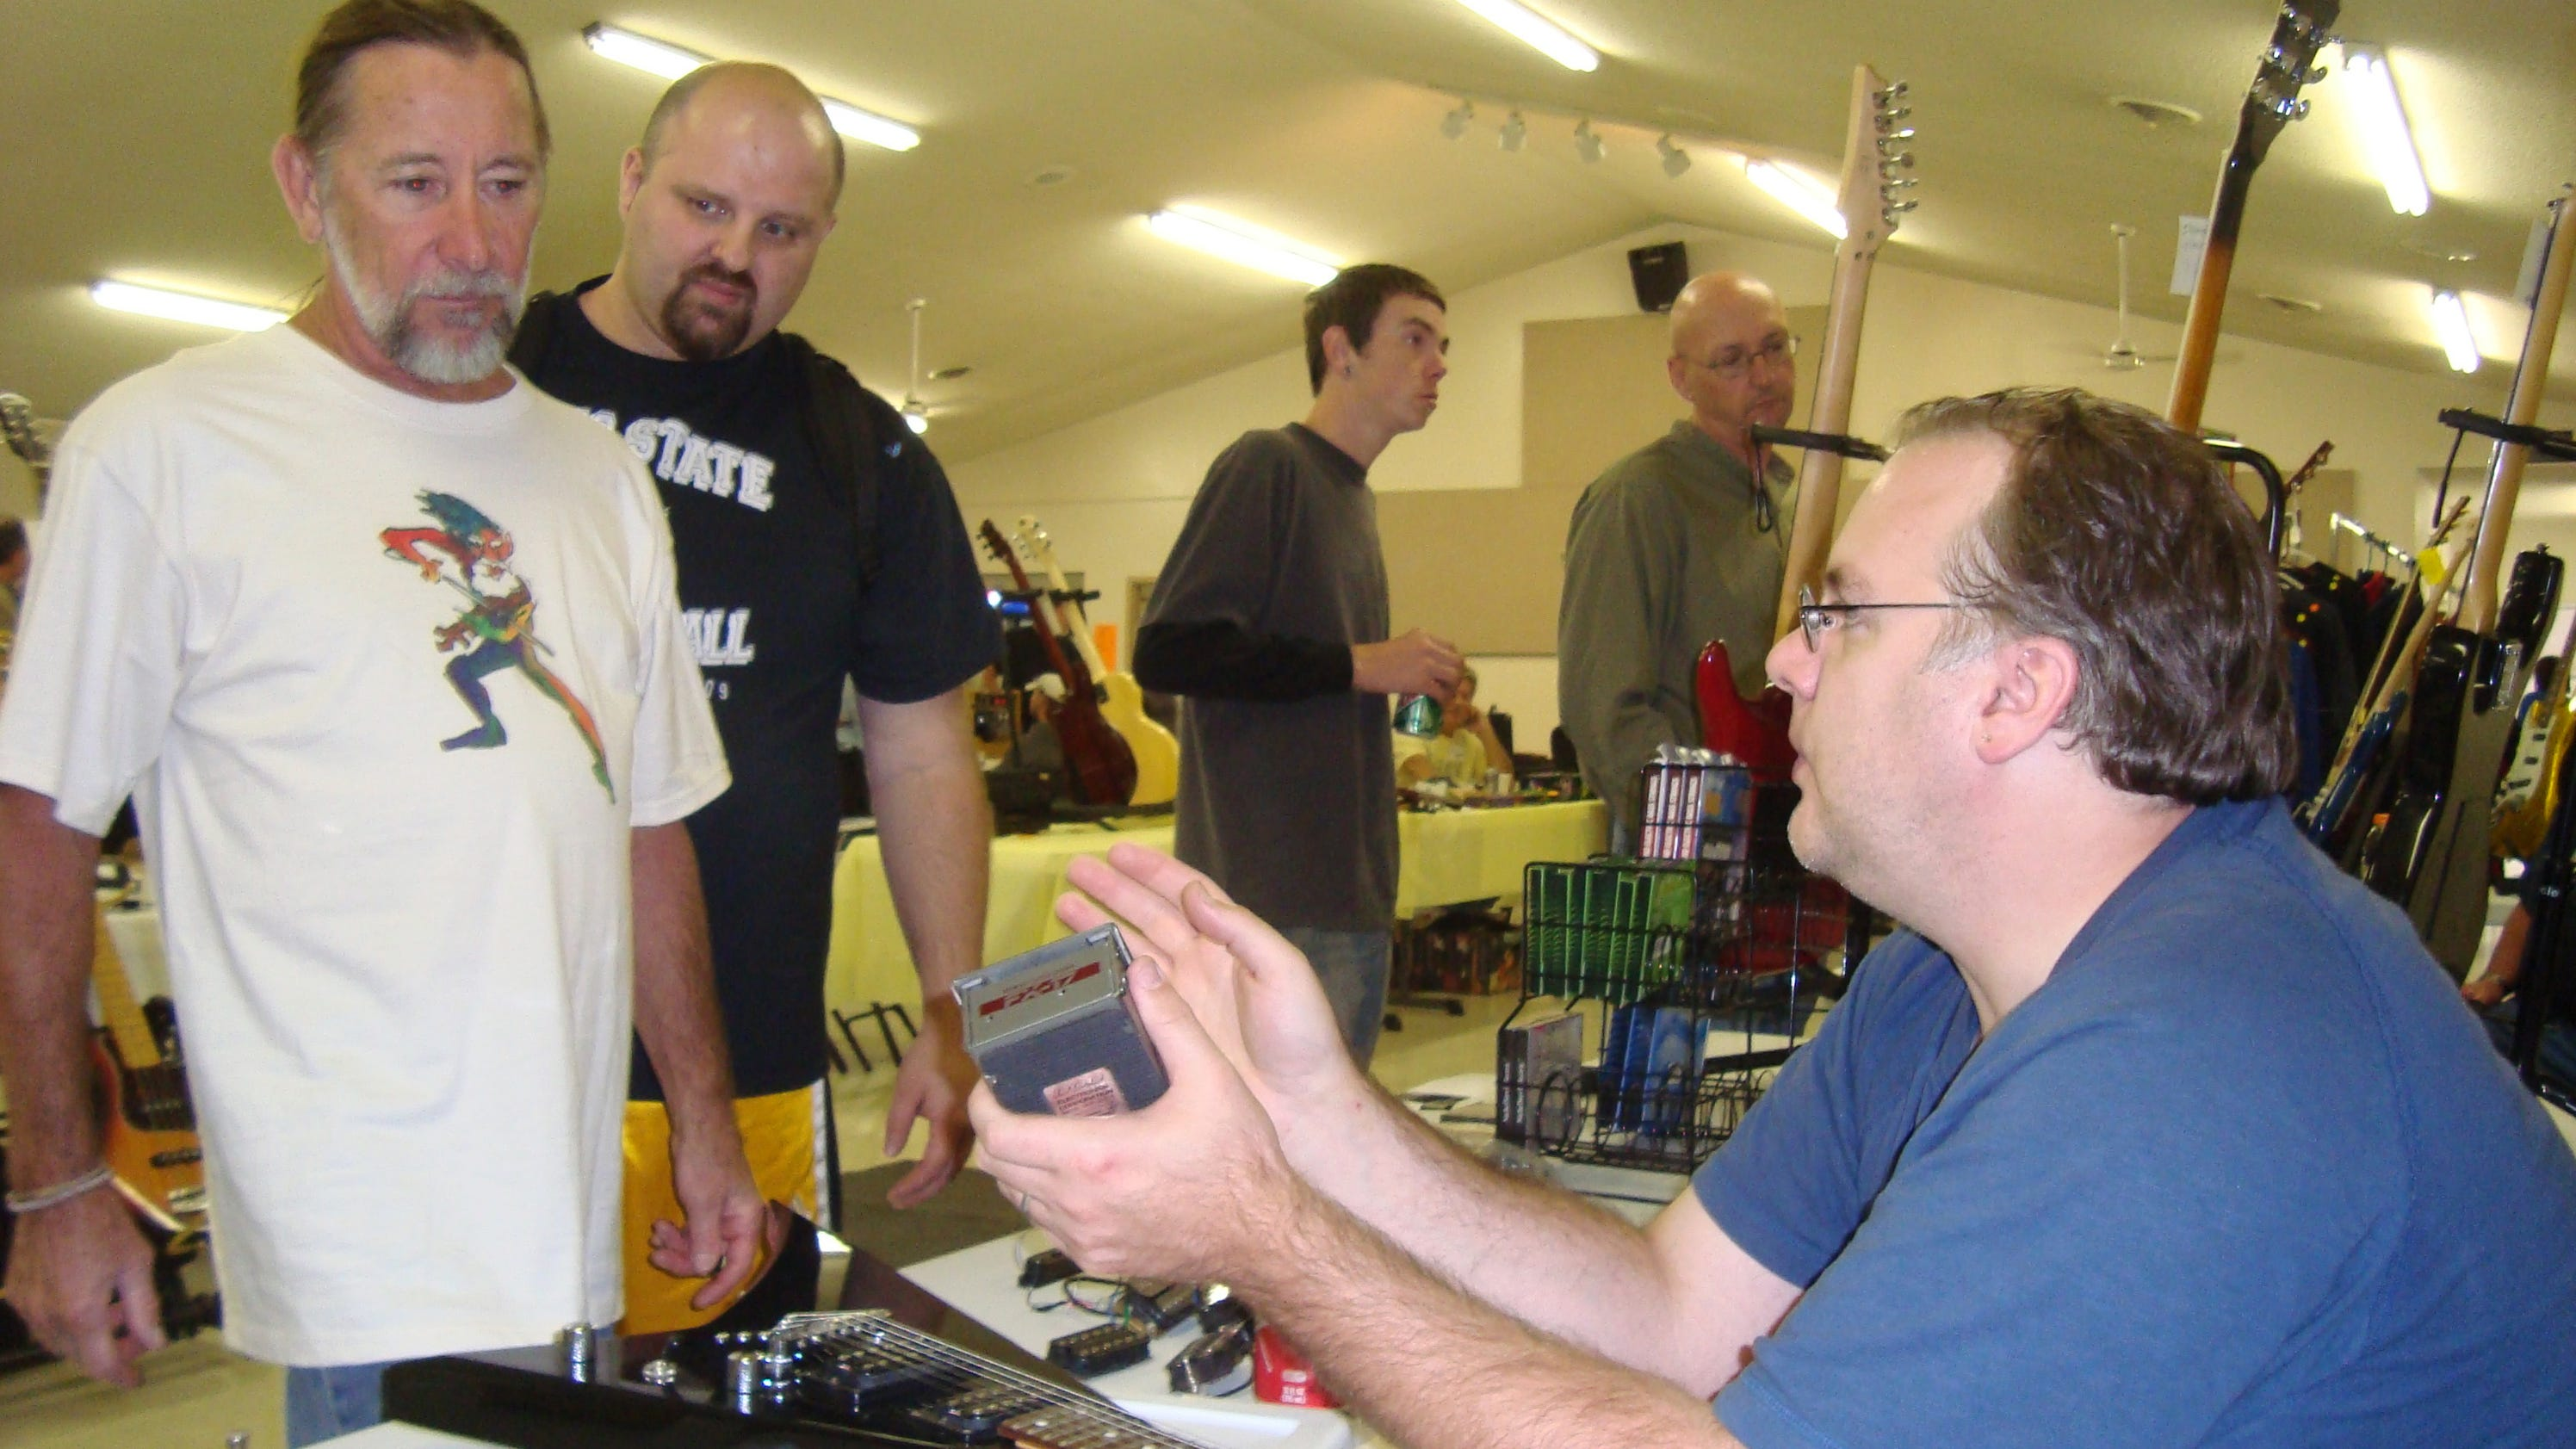 Guitar show continues to see growth